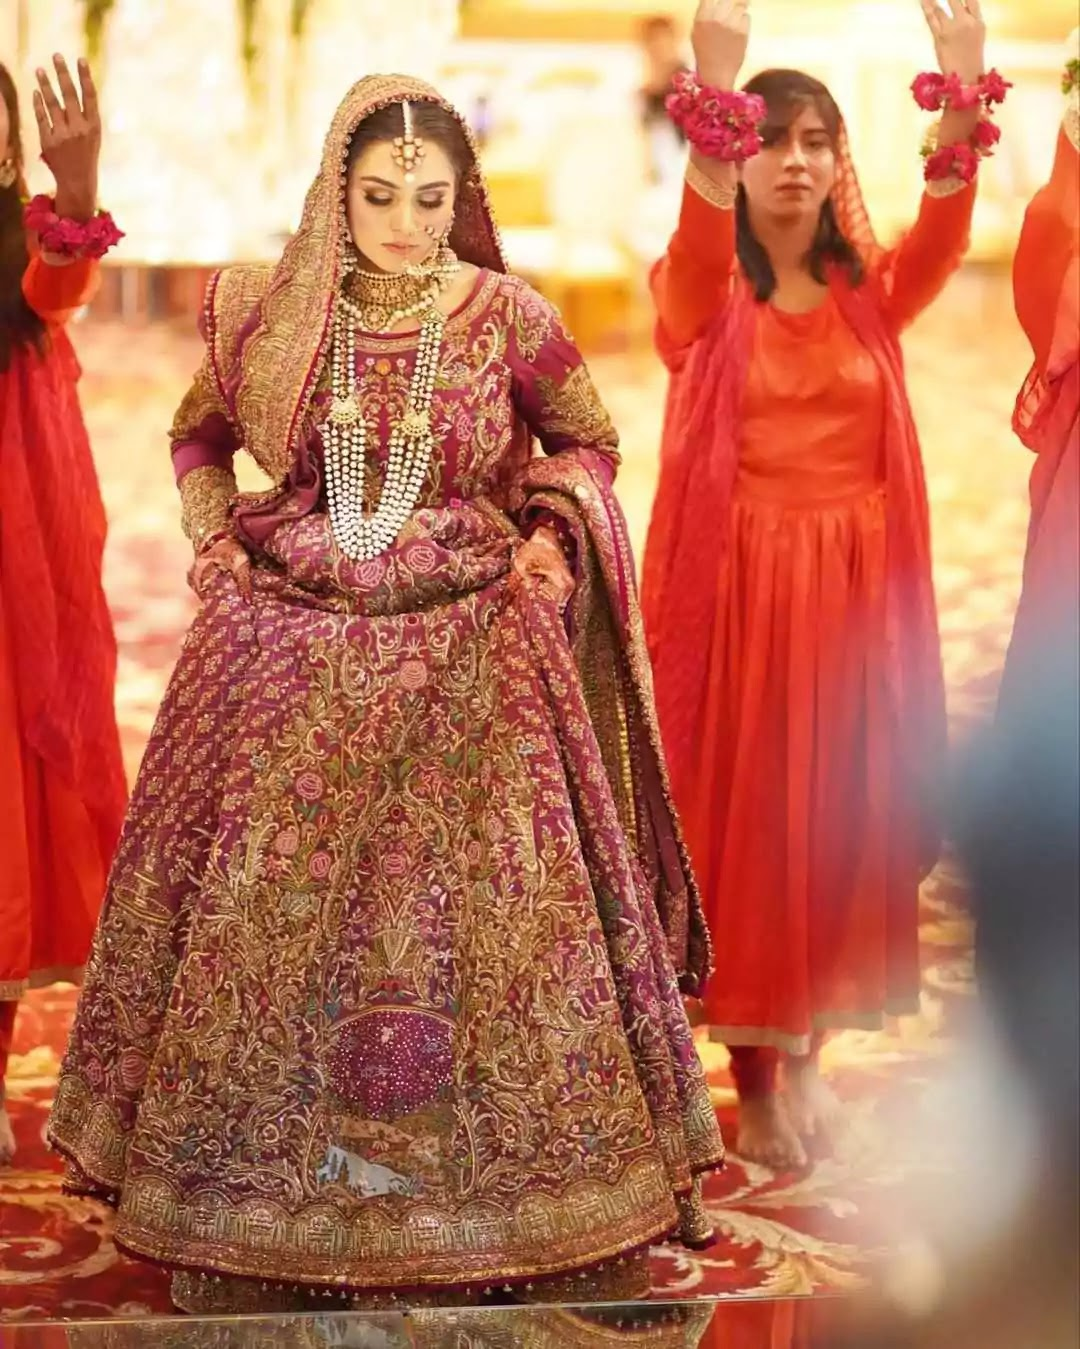 Komal Baig Wedding Pictures With Her Husband